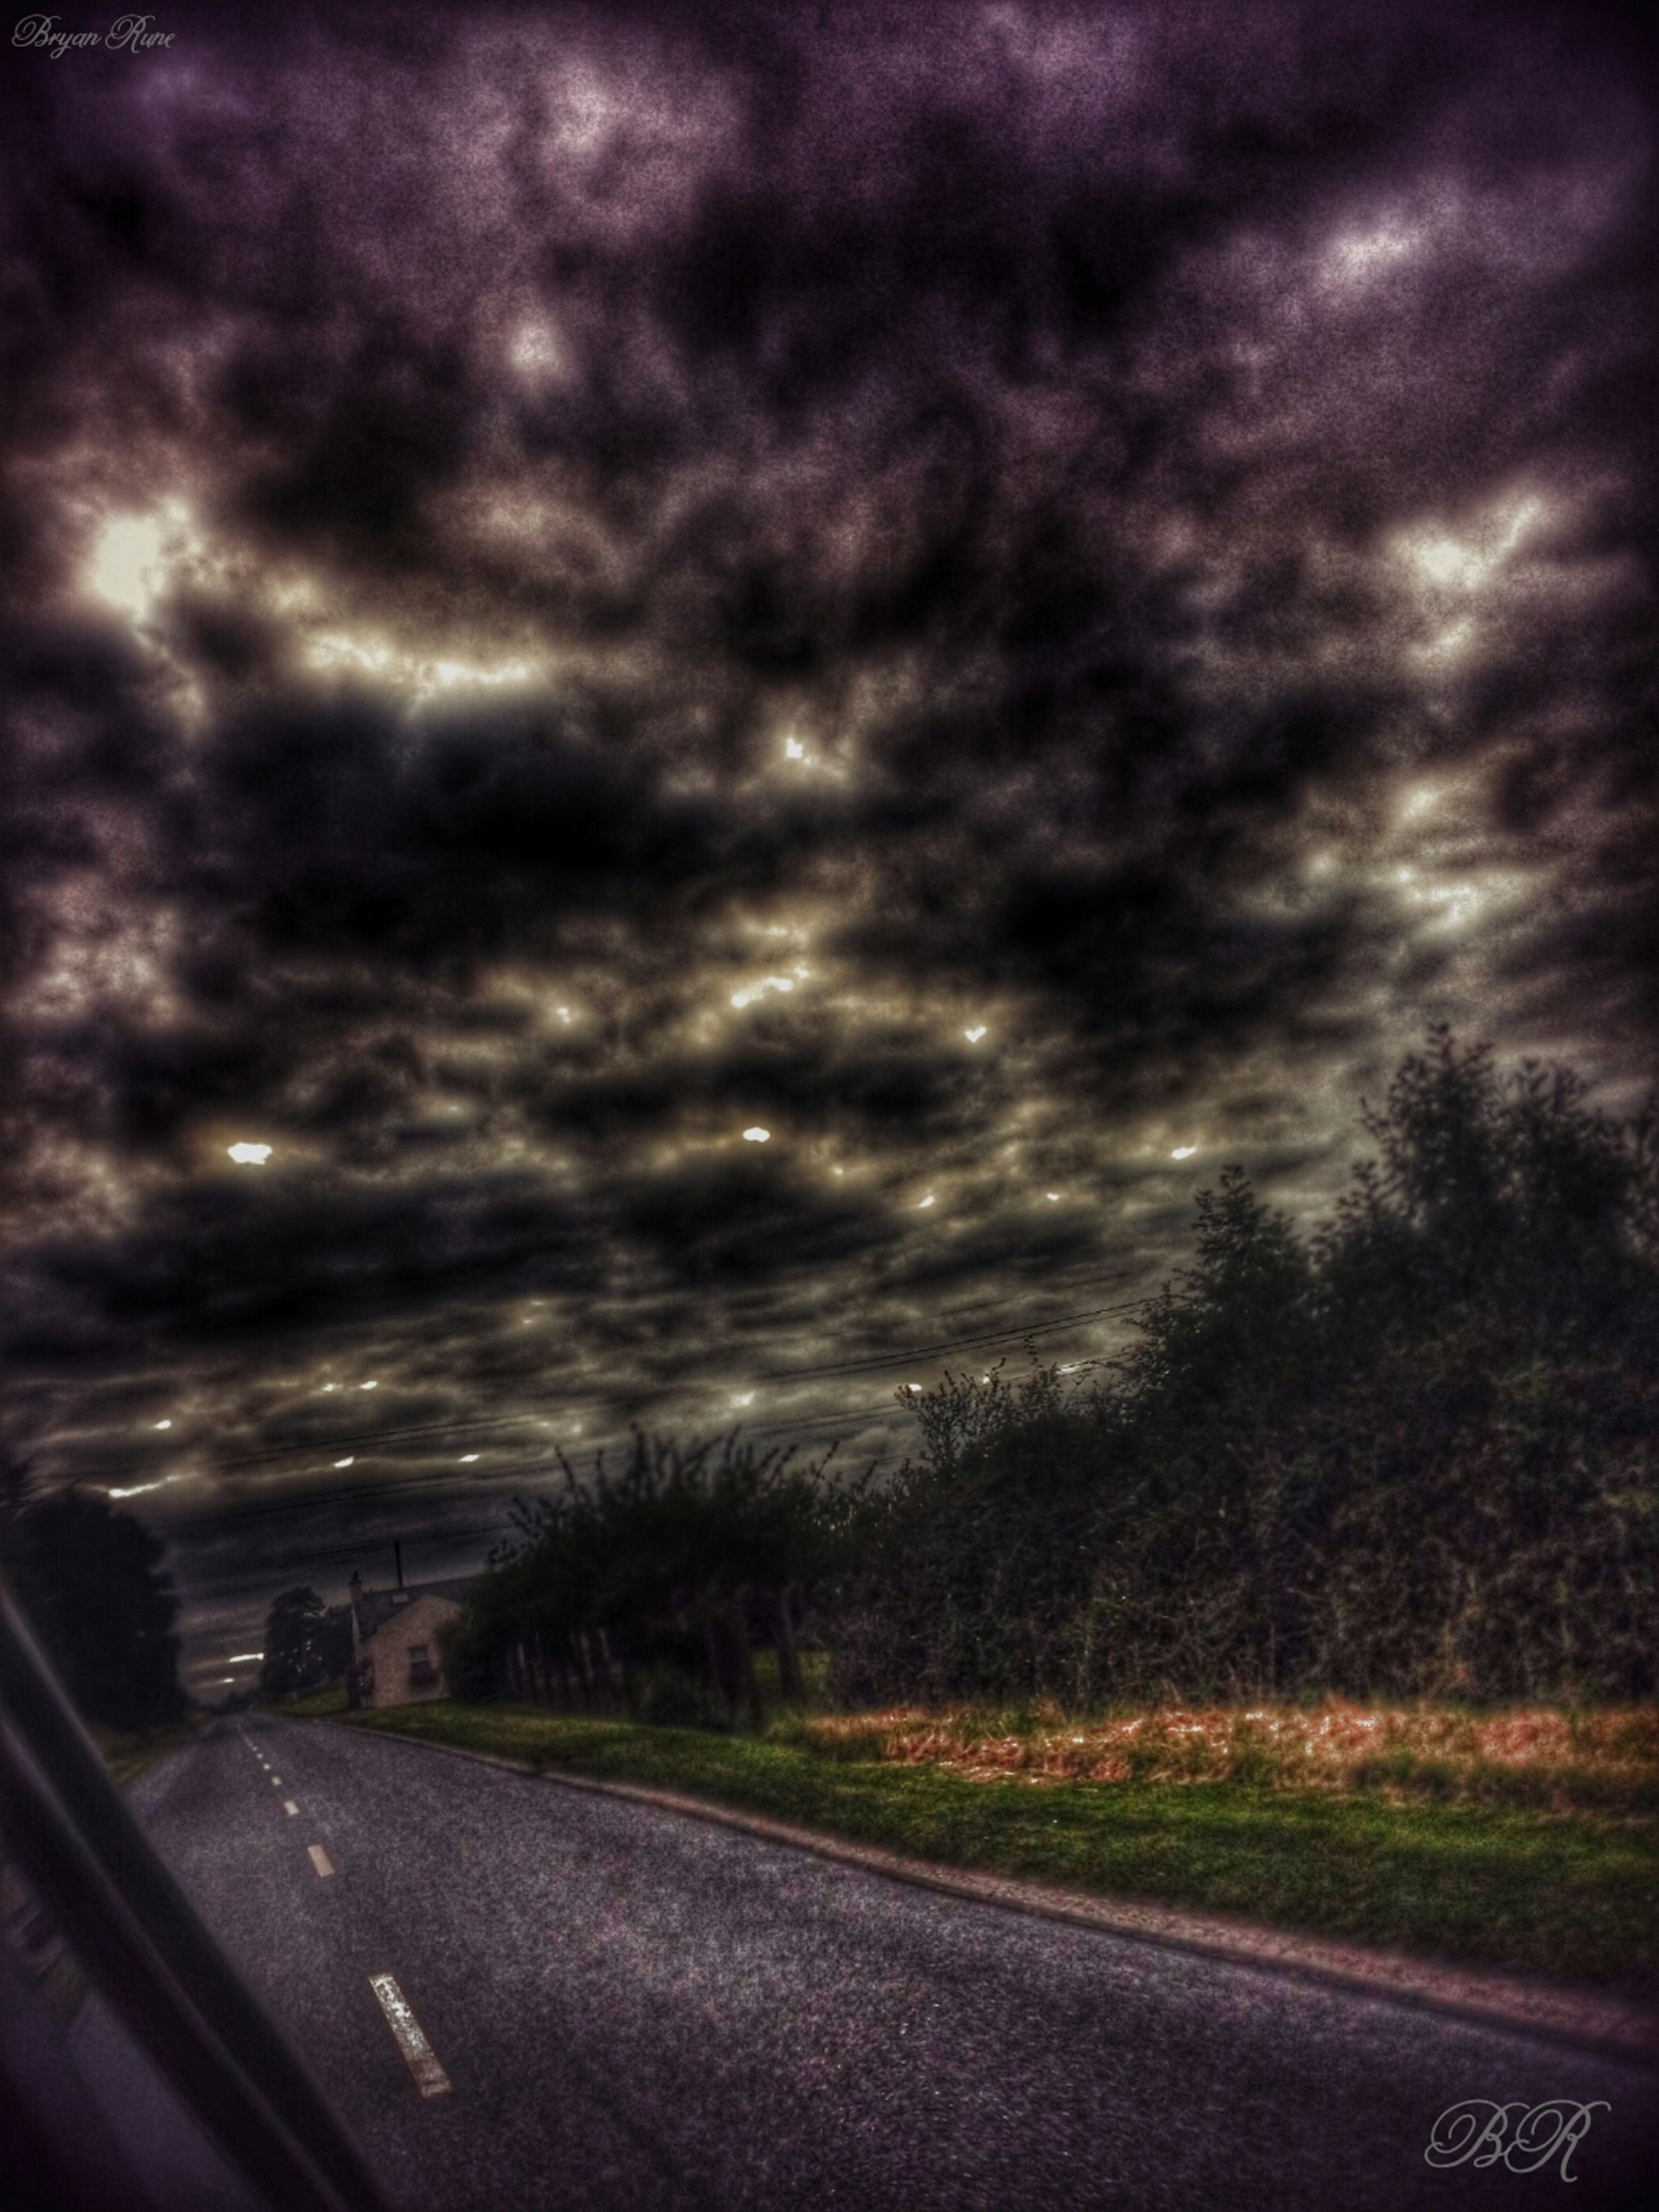 transportation, road, sky, cloud - sky, cloudy, road marking, the way forward, weather, car, overcast, country road, cloud, storm cloud, landscape, street, nature, tree, land vehicle, diminishing perspective, mode of transport